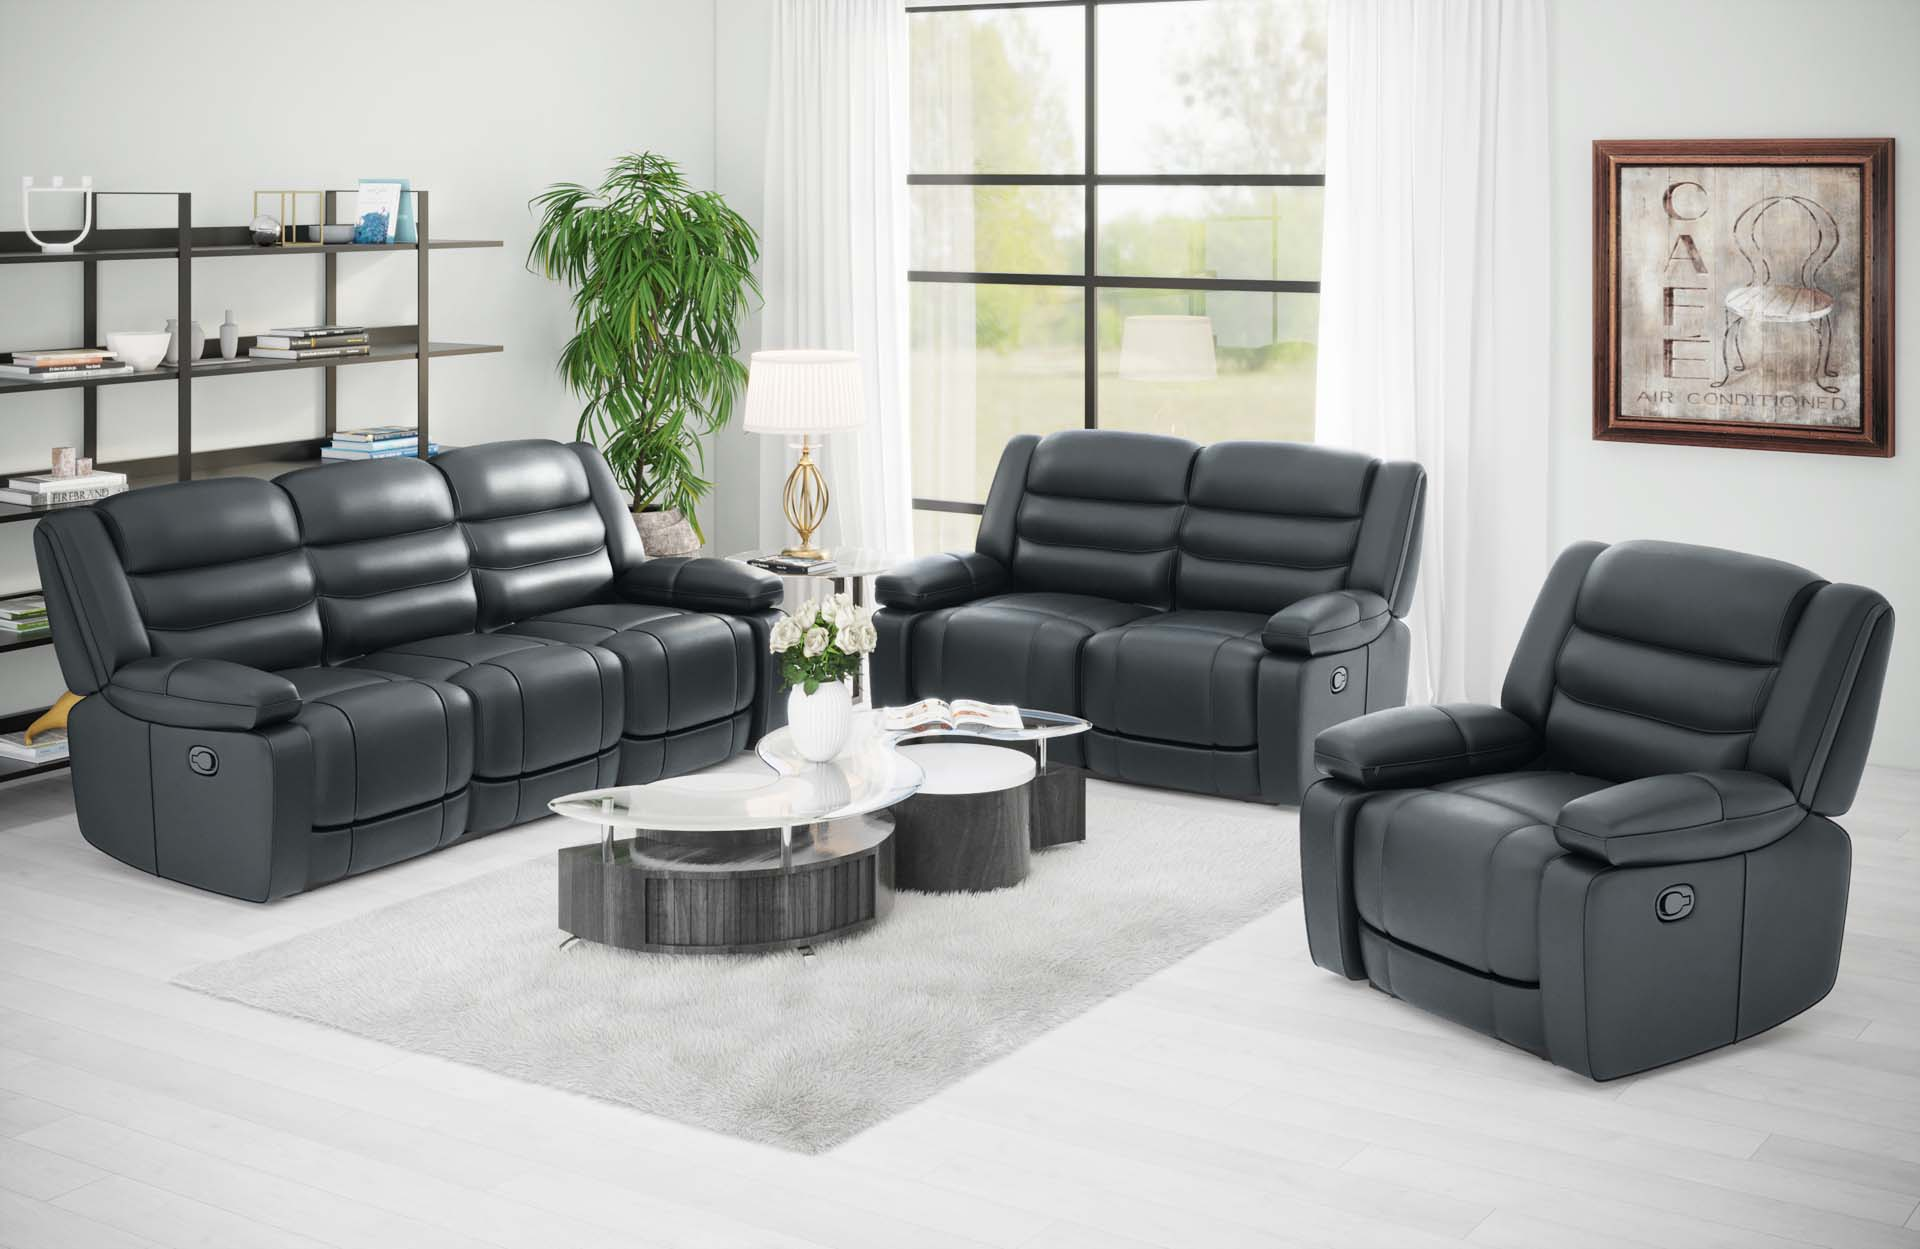 Grey Leather Reclining 3 Piece Living Room Set The Dump Luxe Furniture Outlet